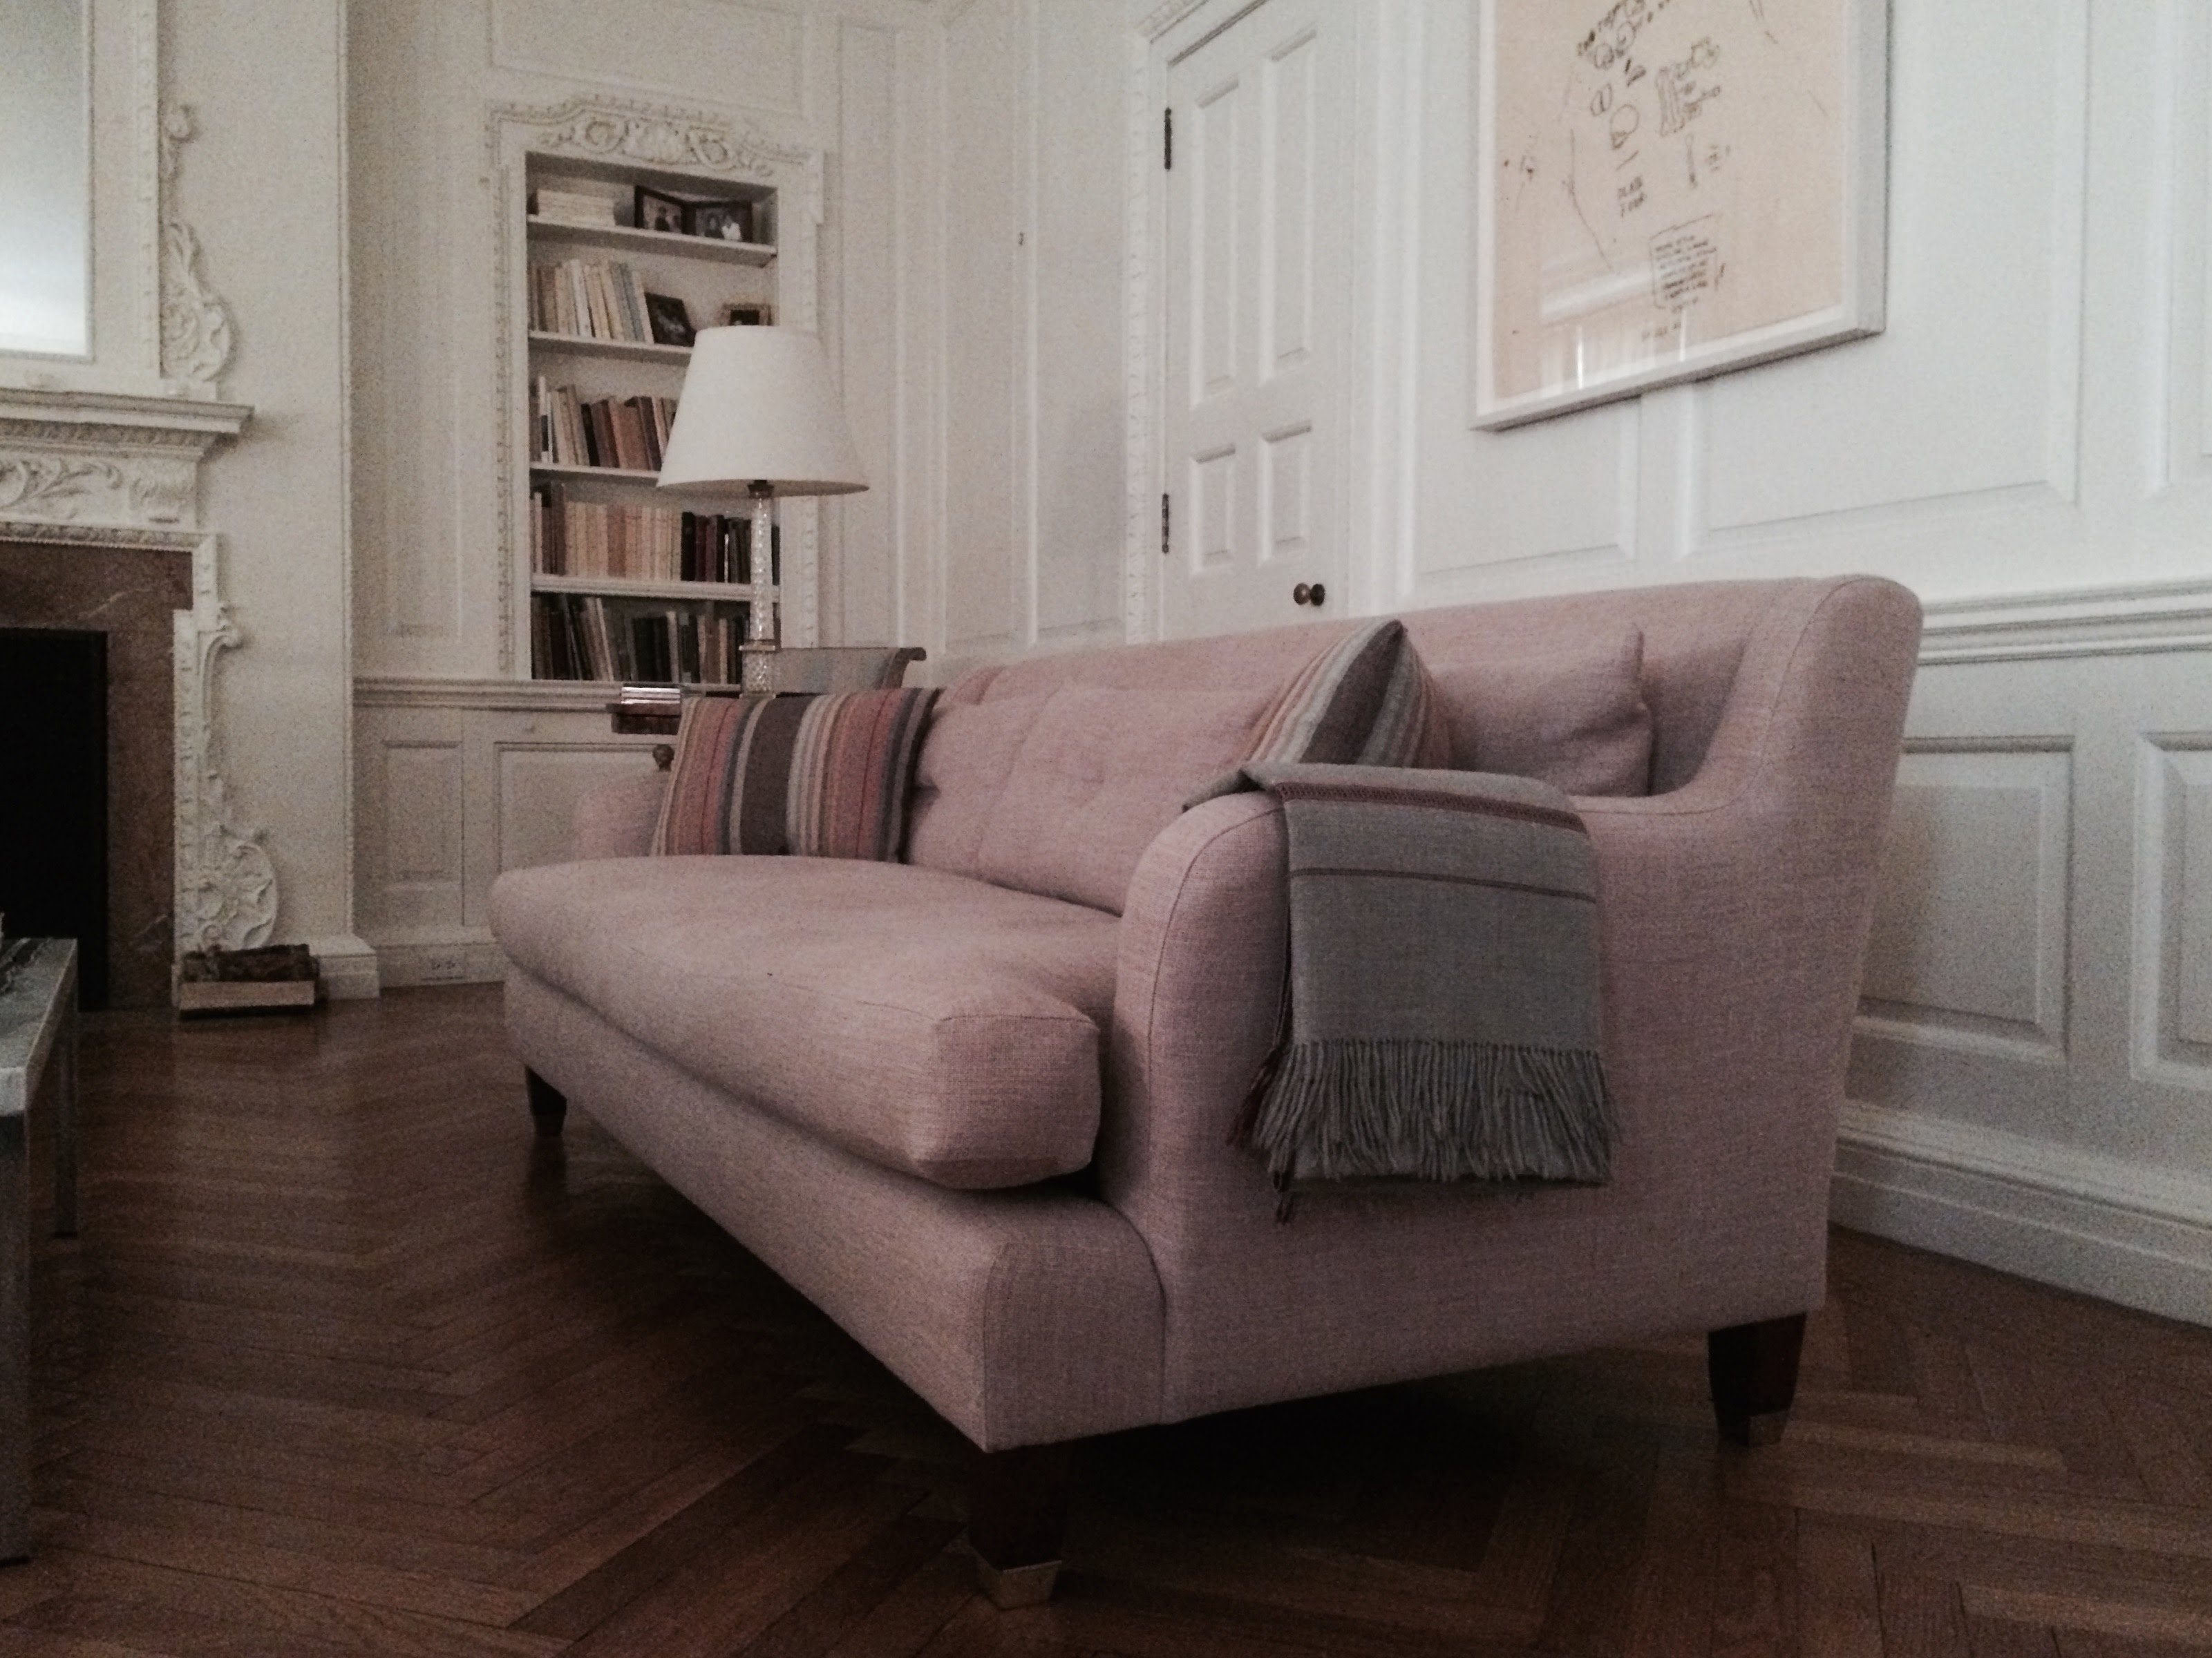 Sofa Reupholstery For Carolina Von Humbolt Interiors   Reupholstered By  Brooklyn Workroom